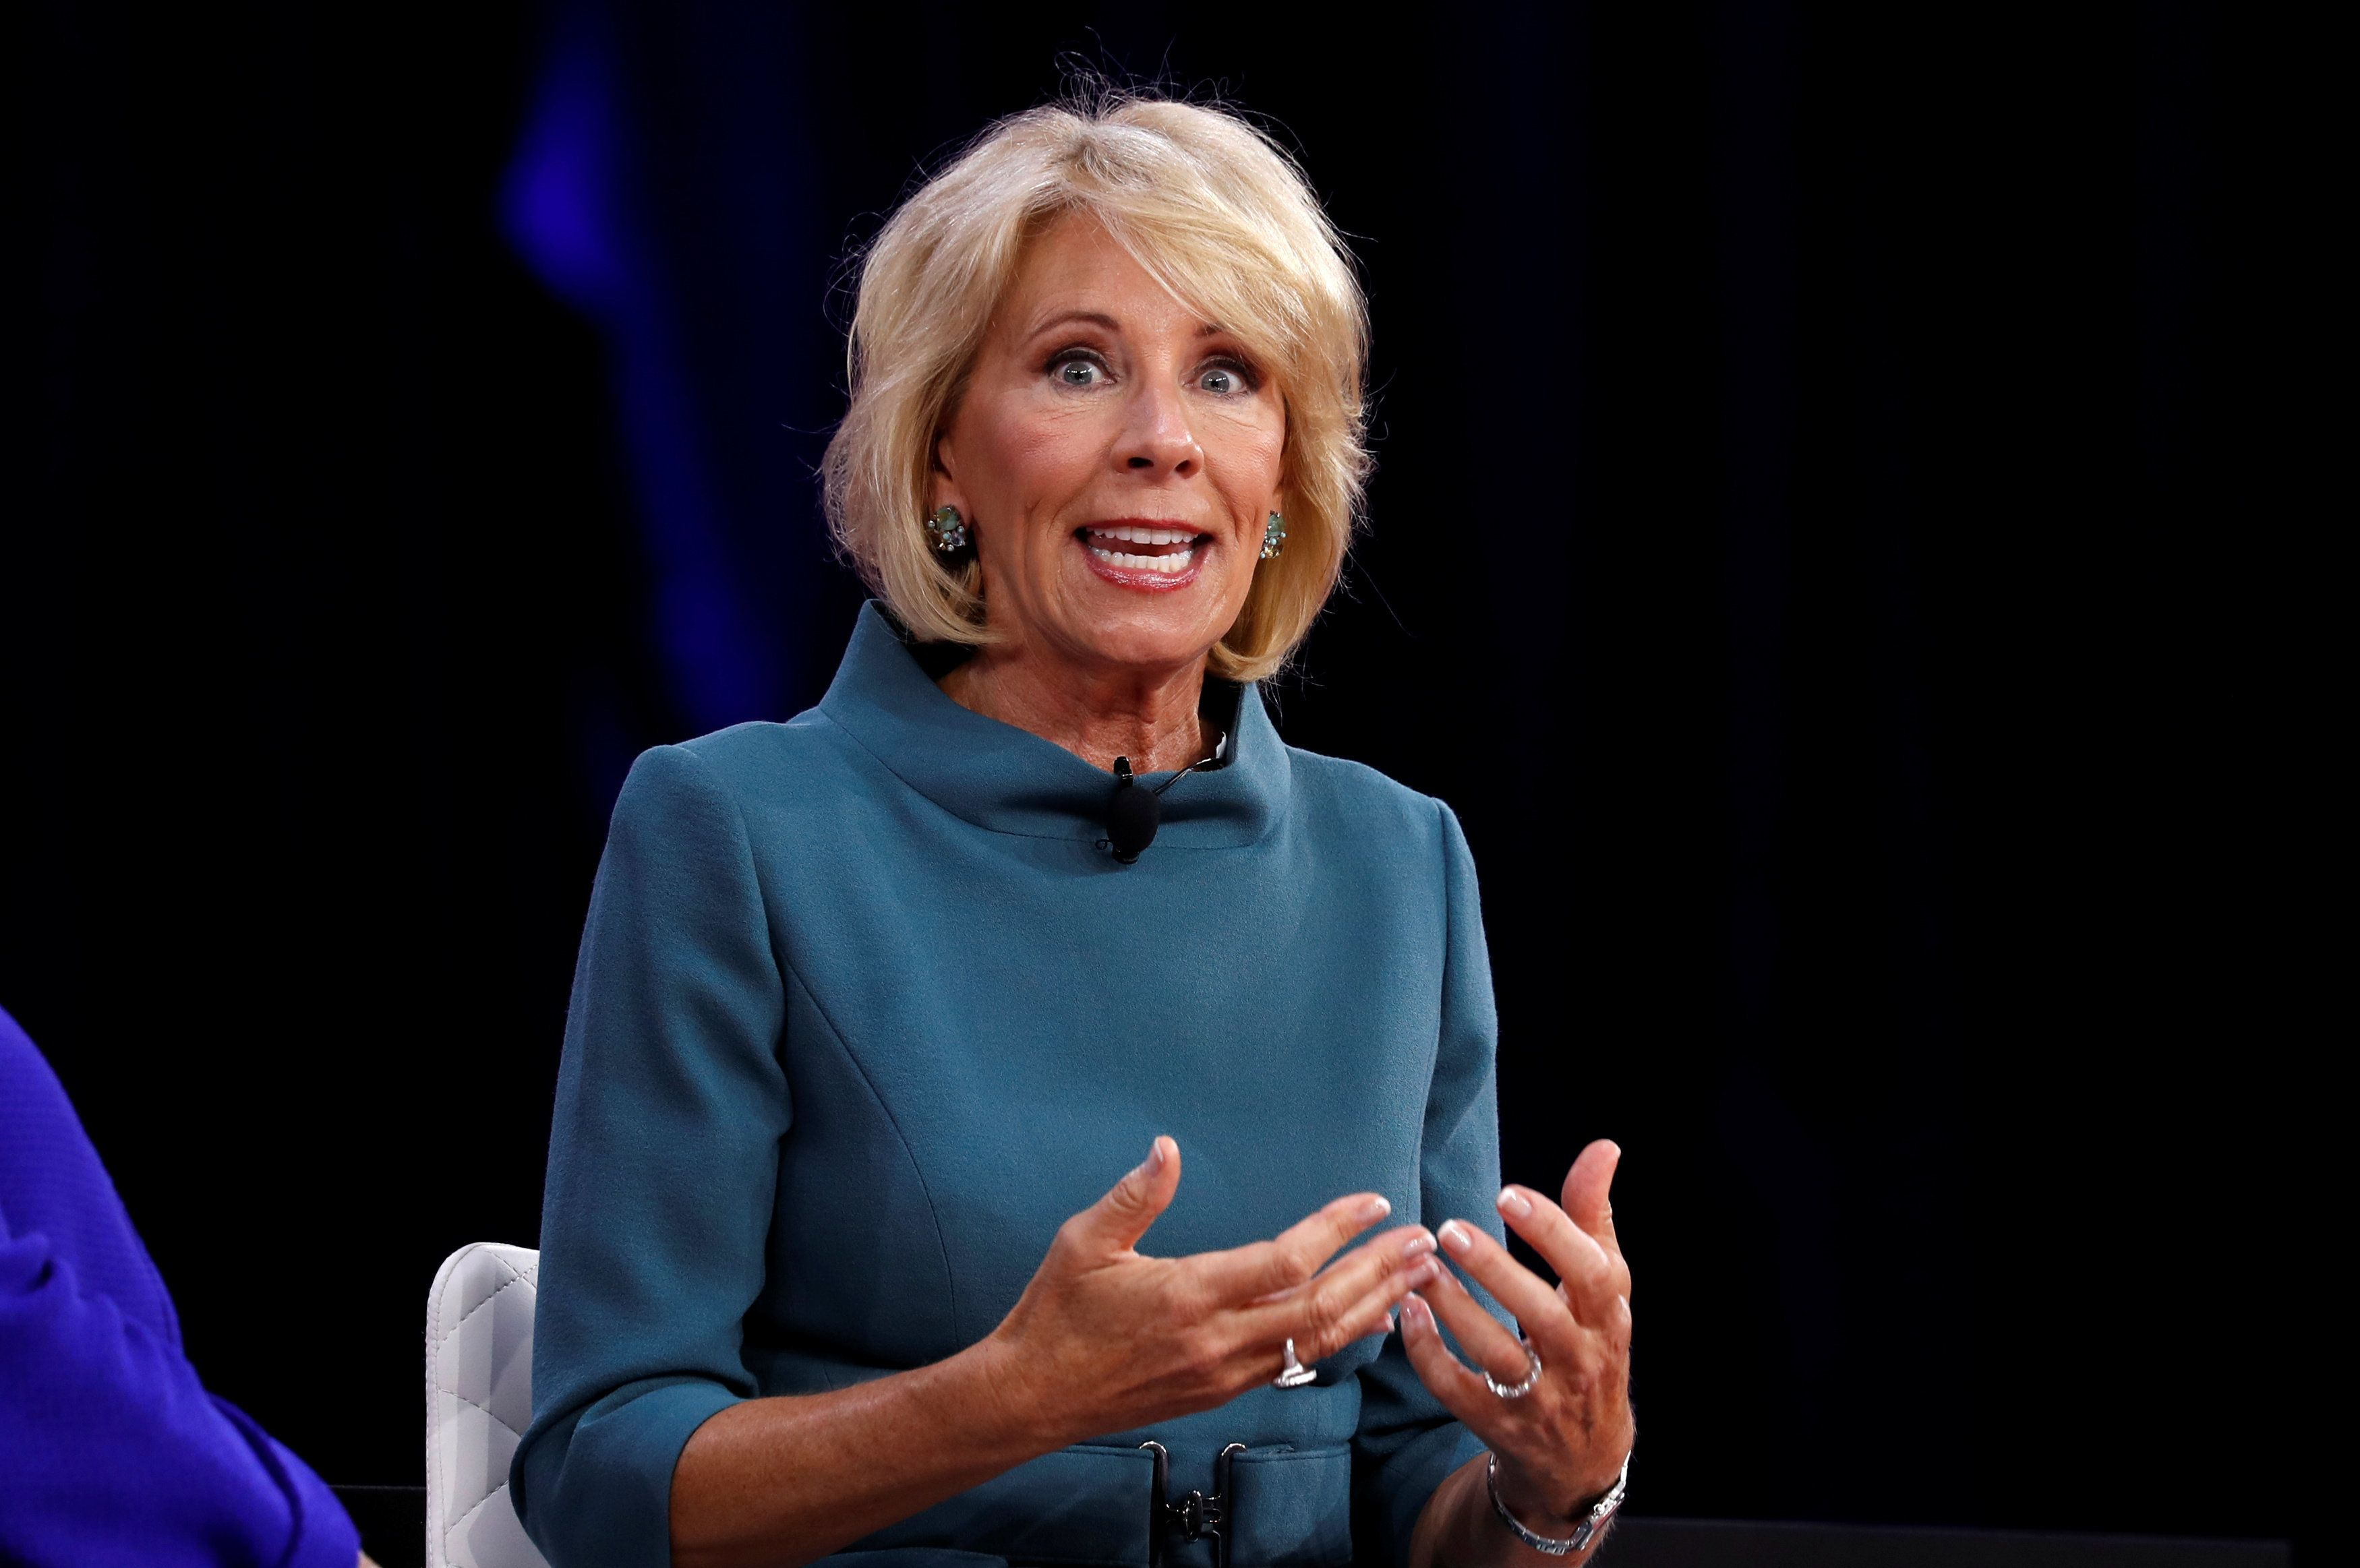 Betsy DeVos Says She's 'Misunderstood,' Then Struggles To Clarify Her Personal Insurance policies